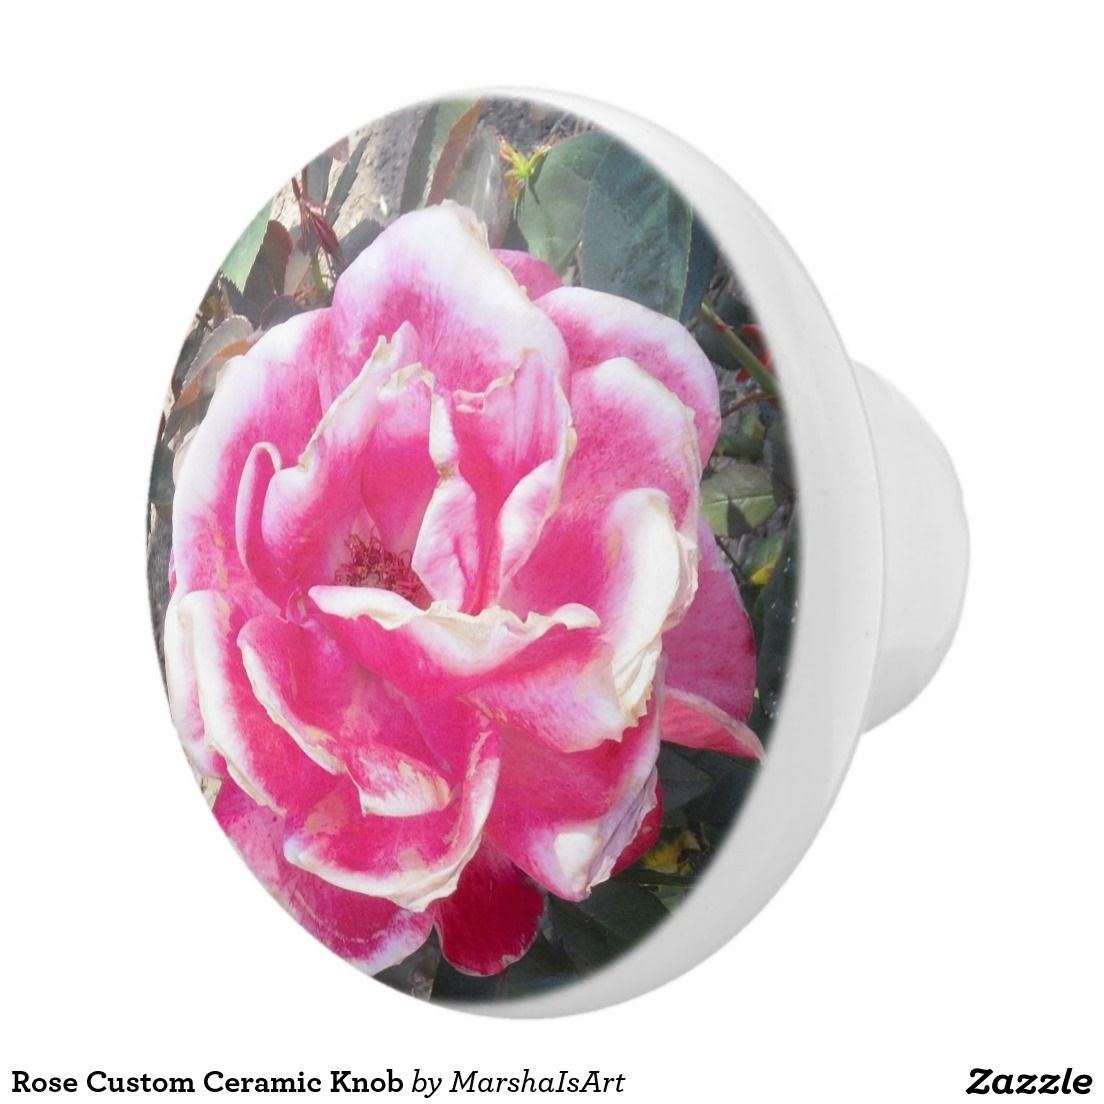 Rose Custom Ceramic Knob